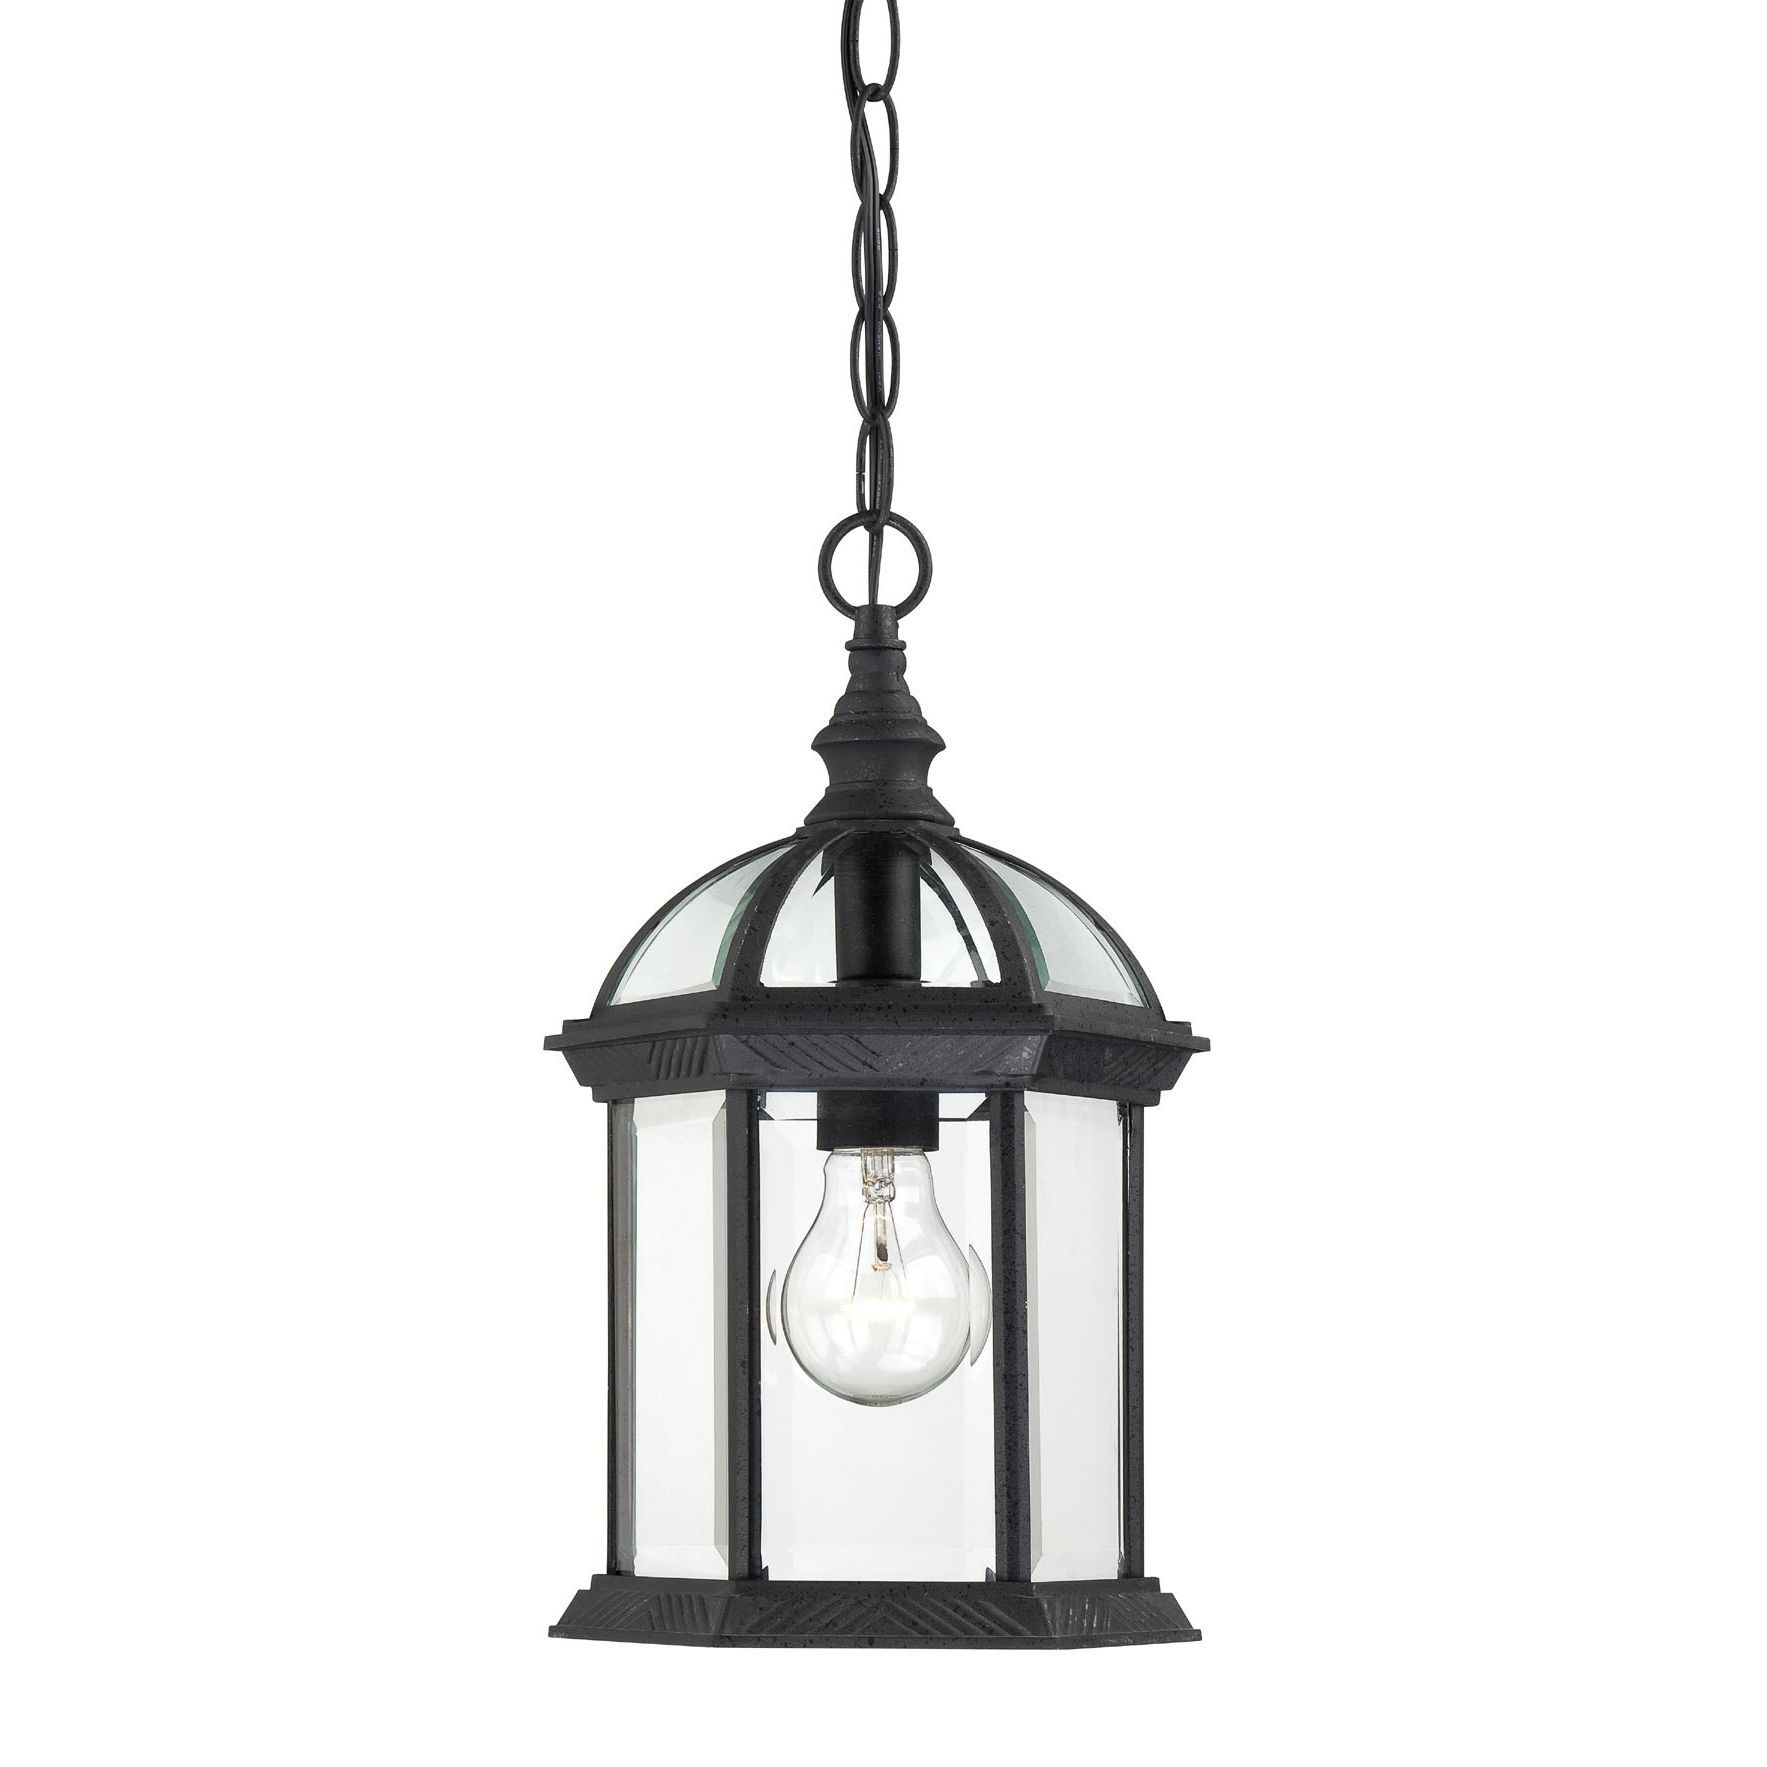 hang this elegant nuvo outdoor lighting fixture over your porch to